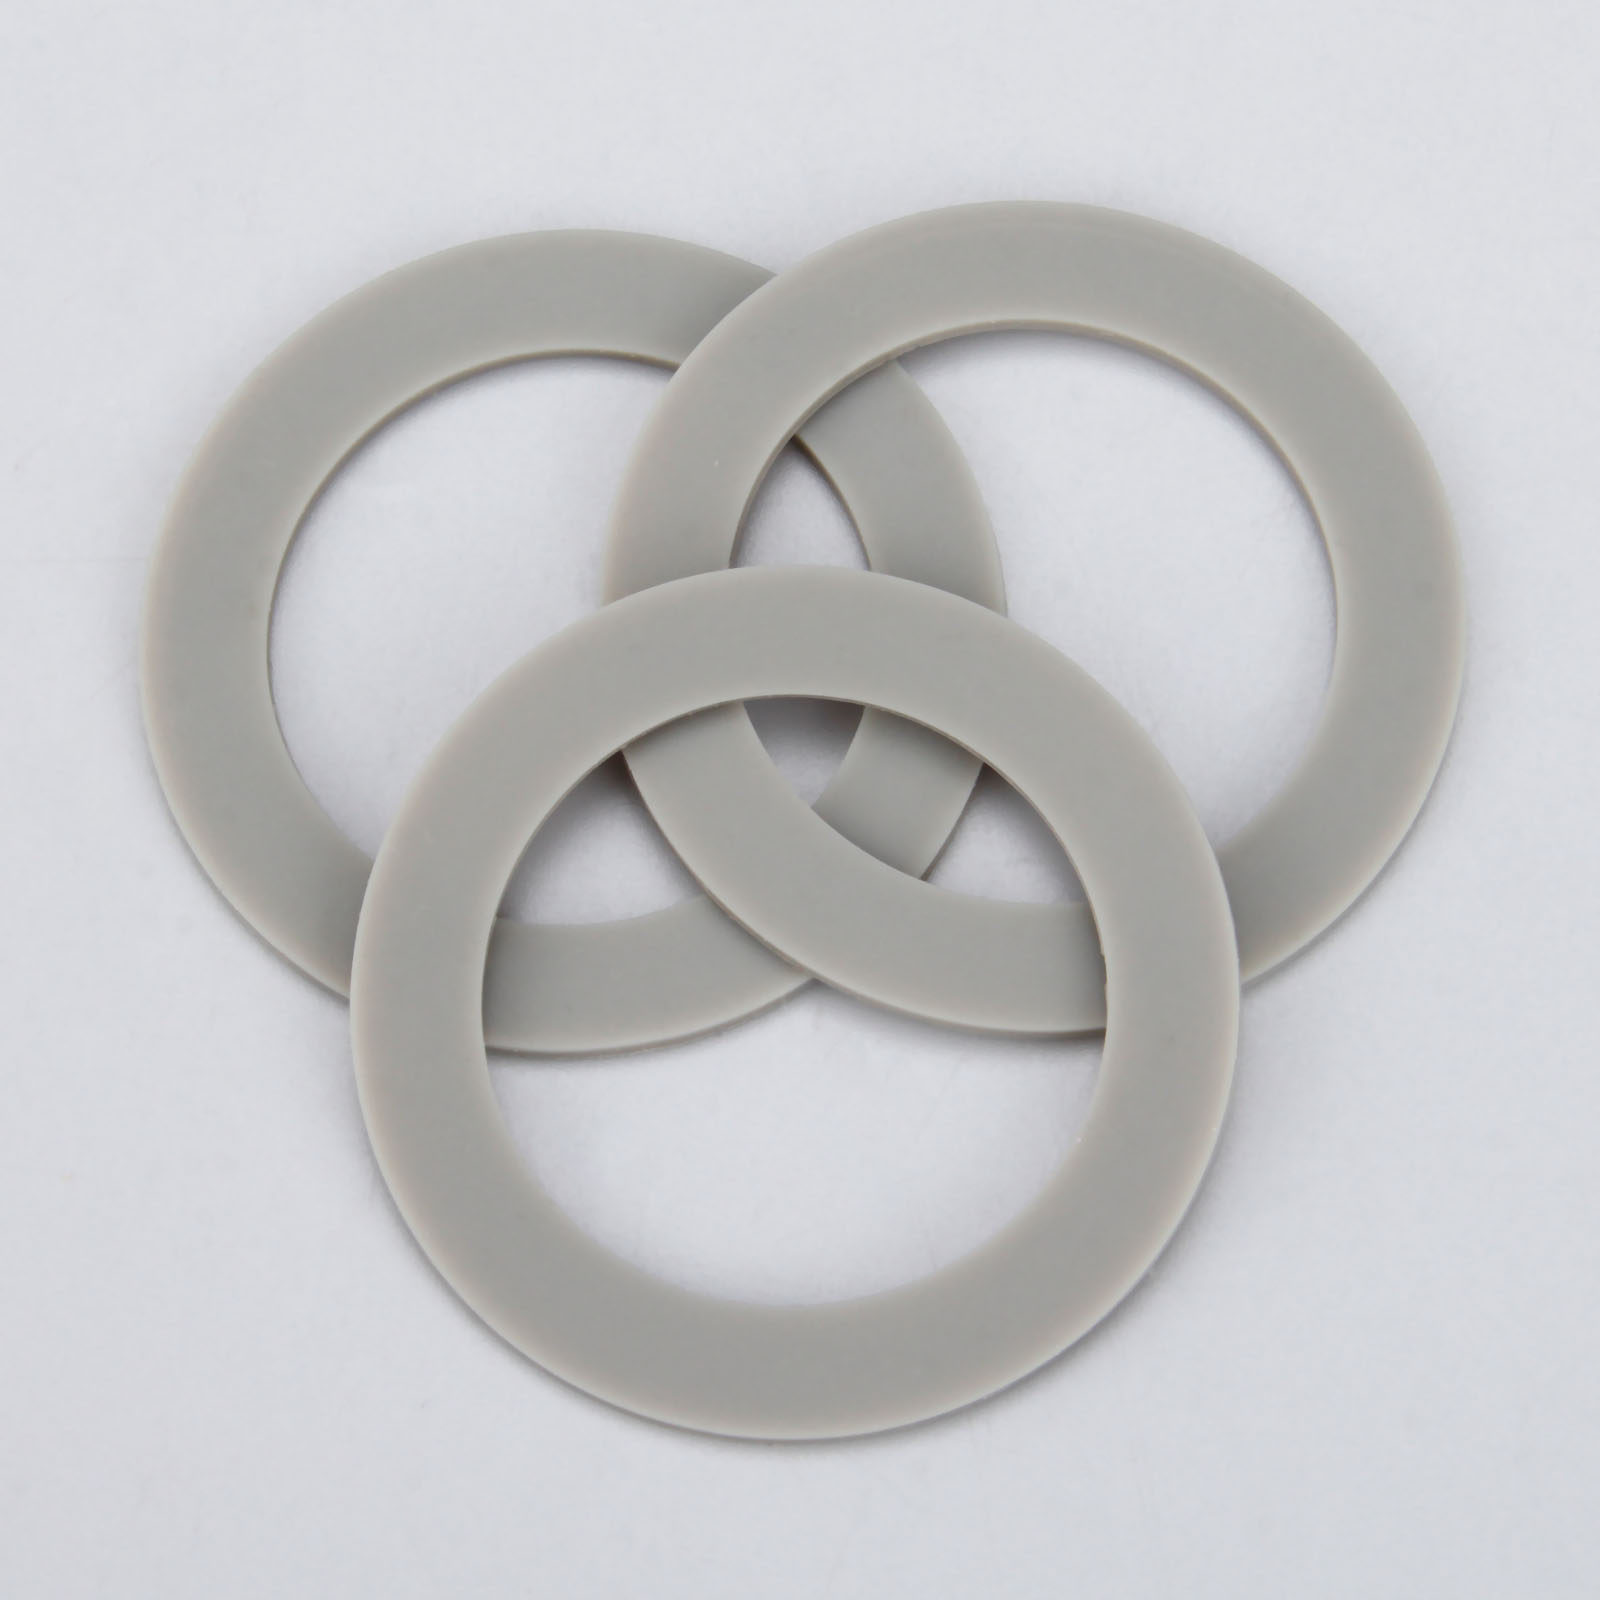 3Pcs Replacement Rubber Base Sealing Gasket O-ring Fit For Hamilton Beach Blender